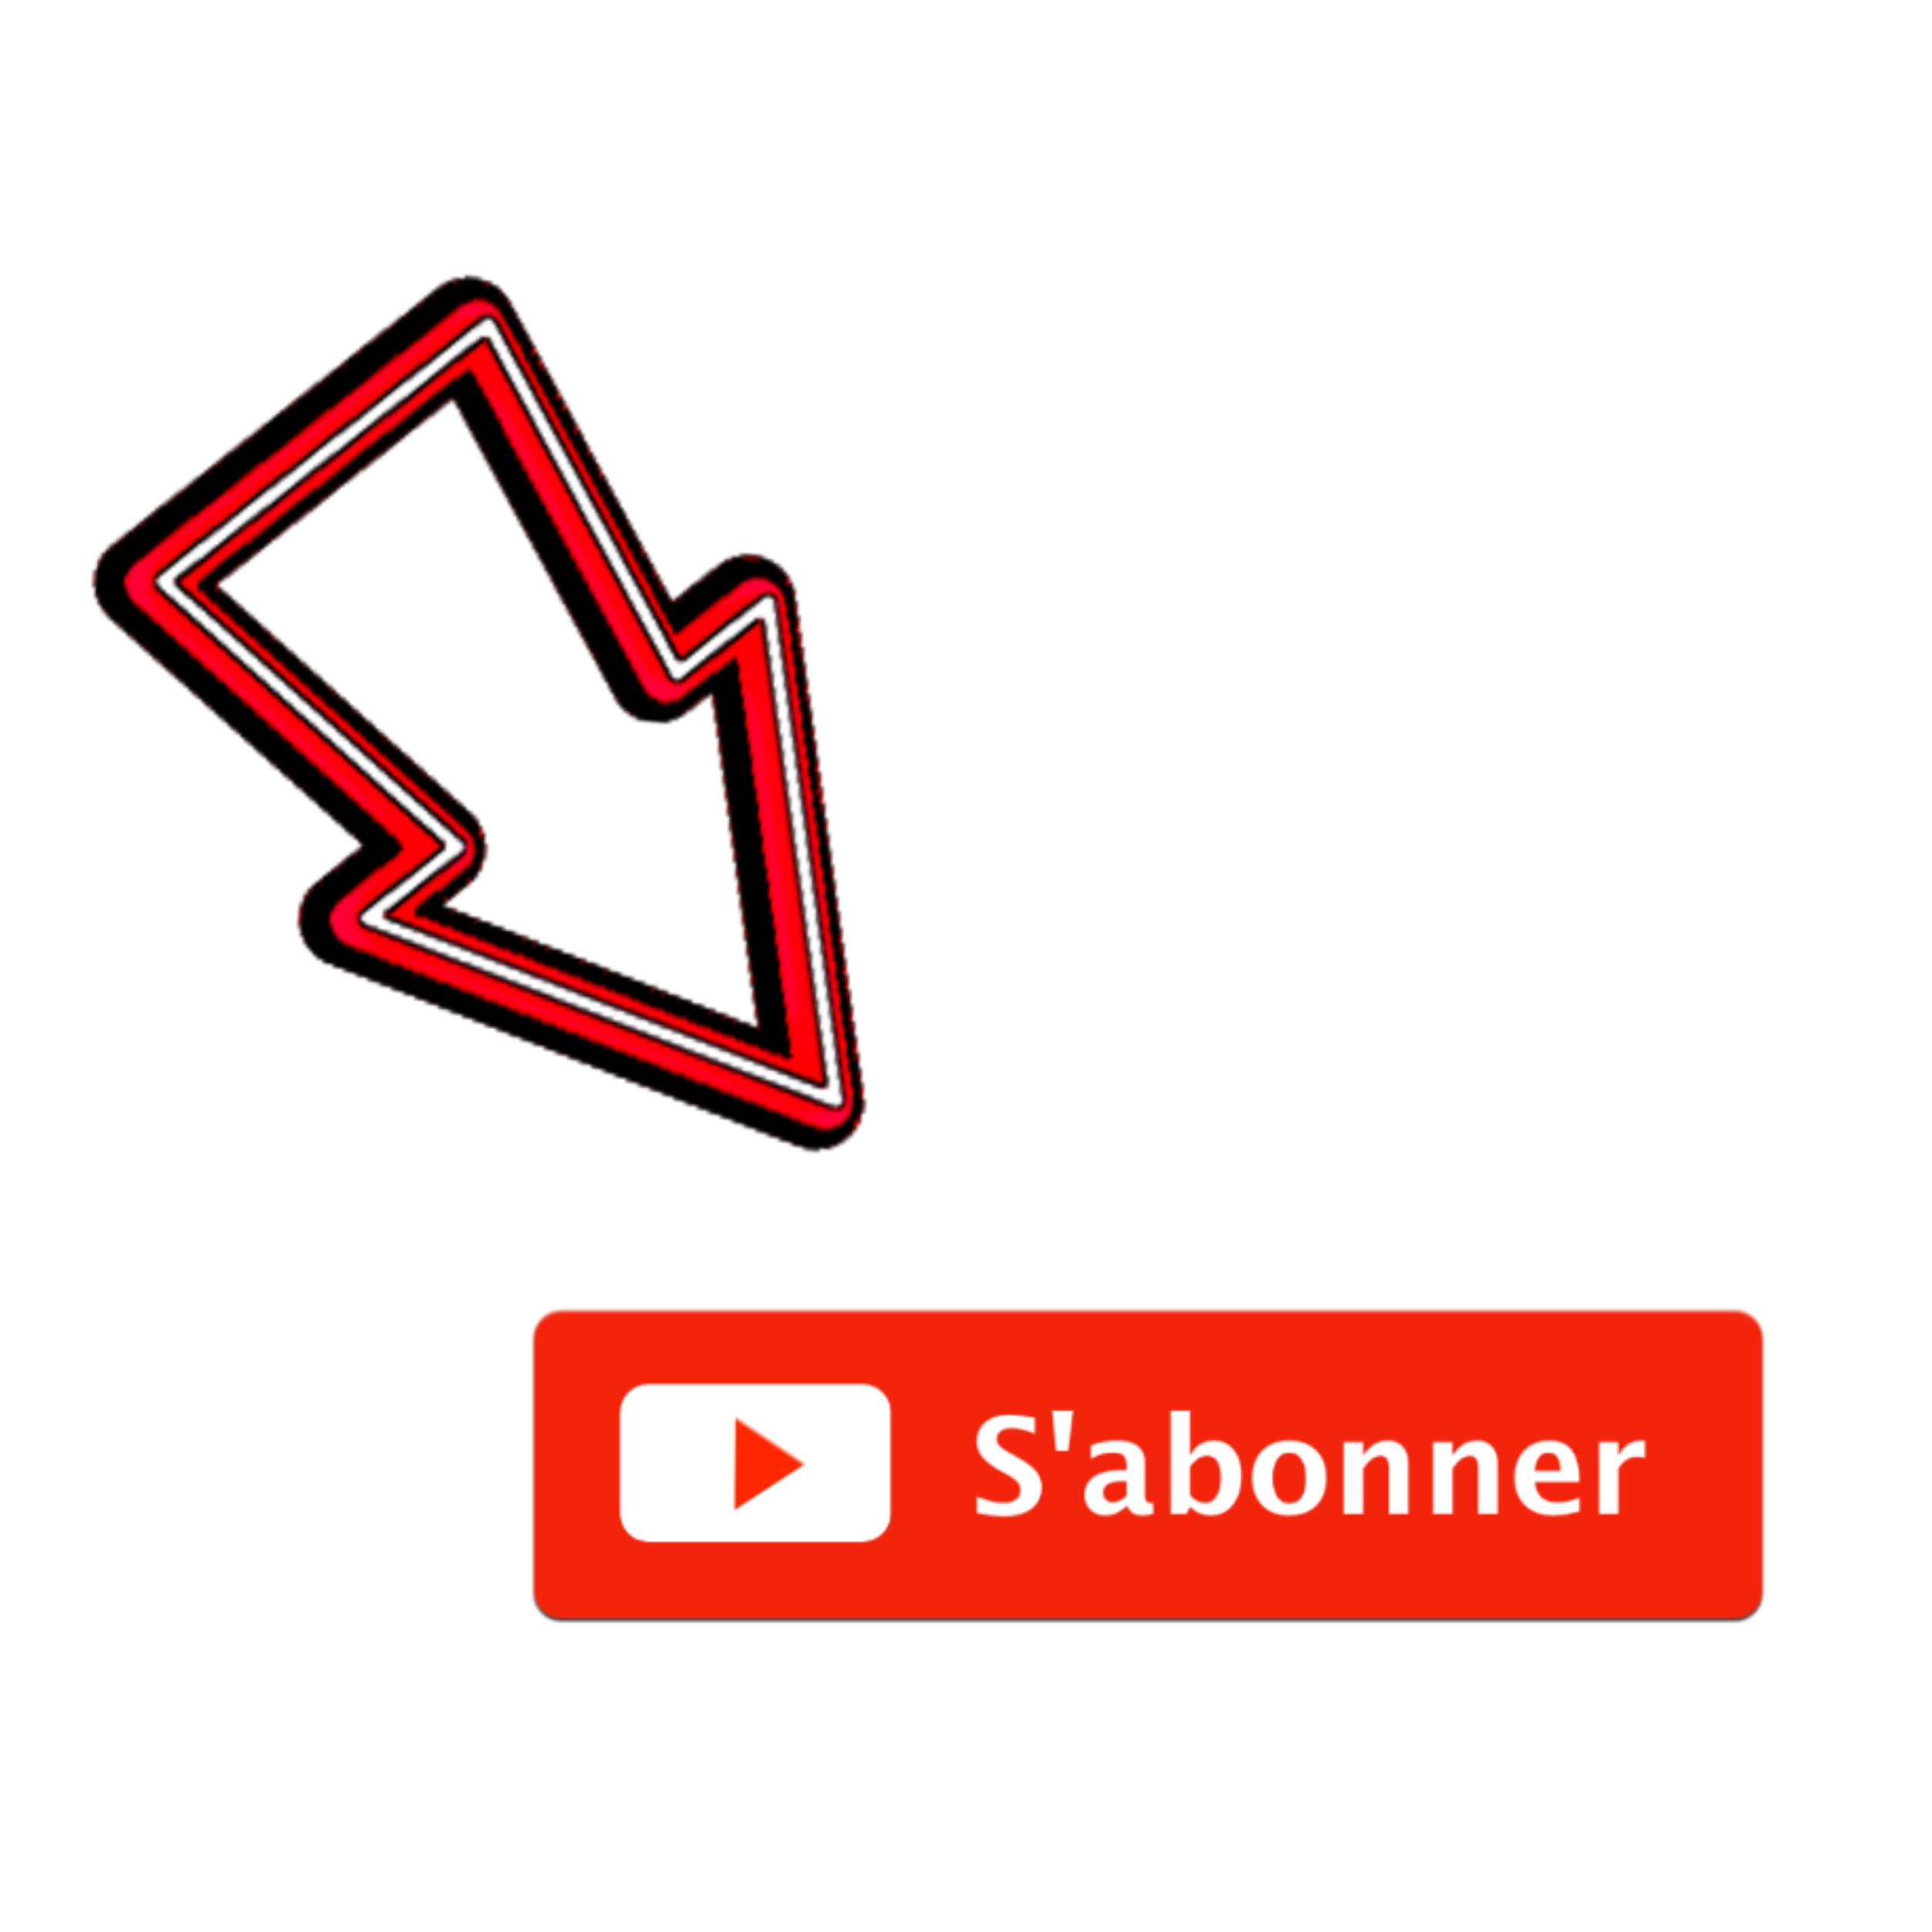 sabonner abonner youtube subcribe french